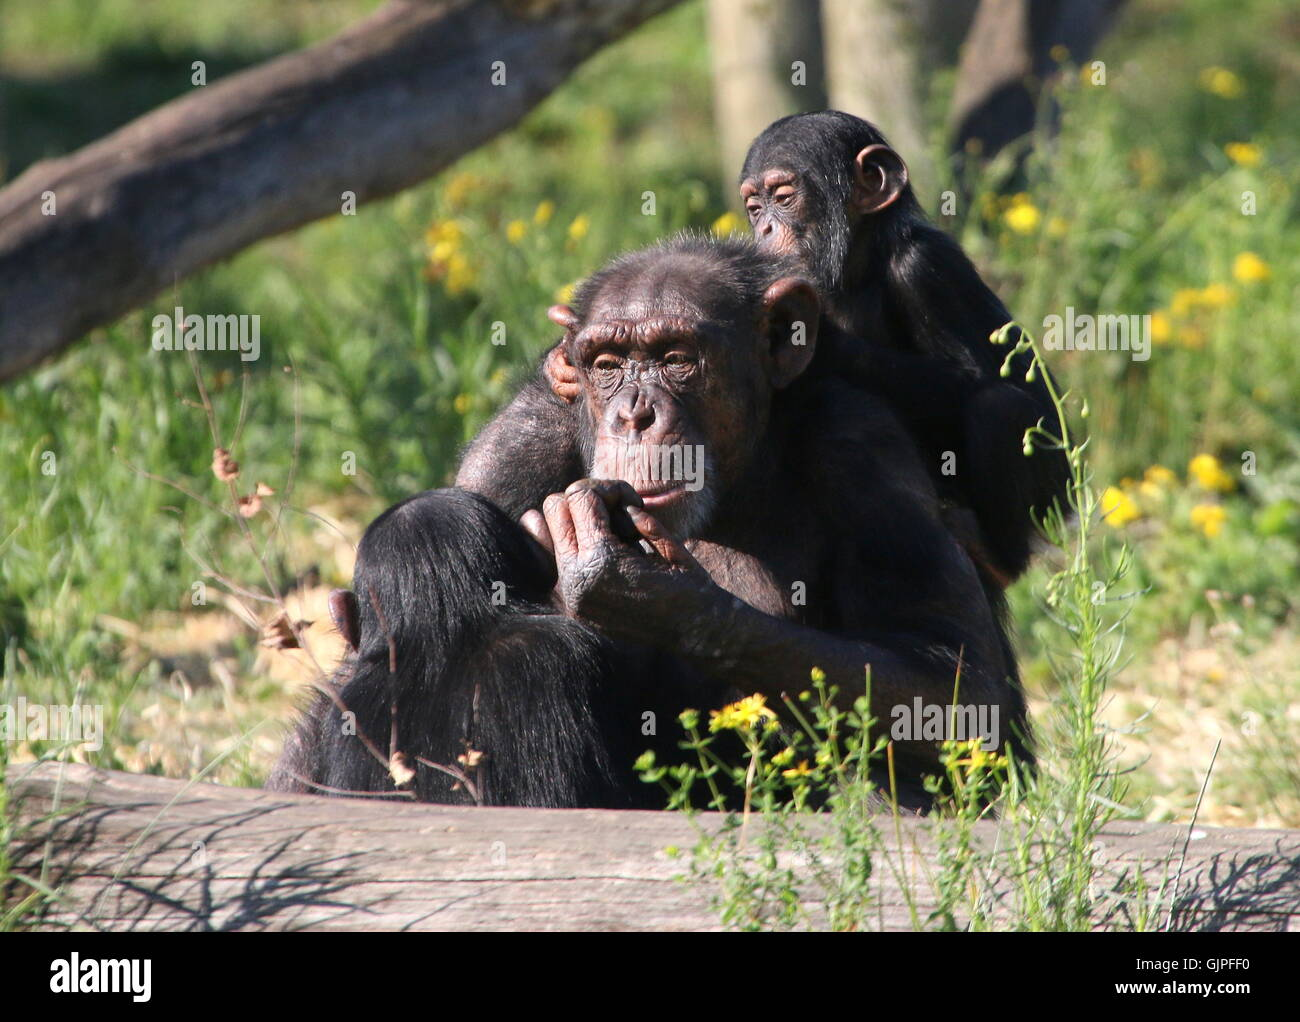 Female  Common chimpanzee (Pan troglodytes) with a youngster on her back, another young male facing her. - Stock Image